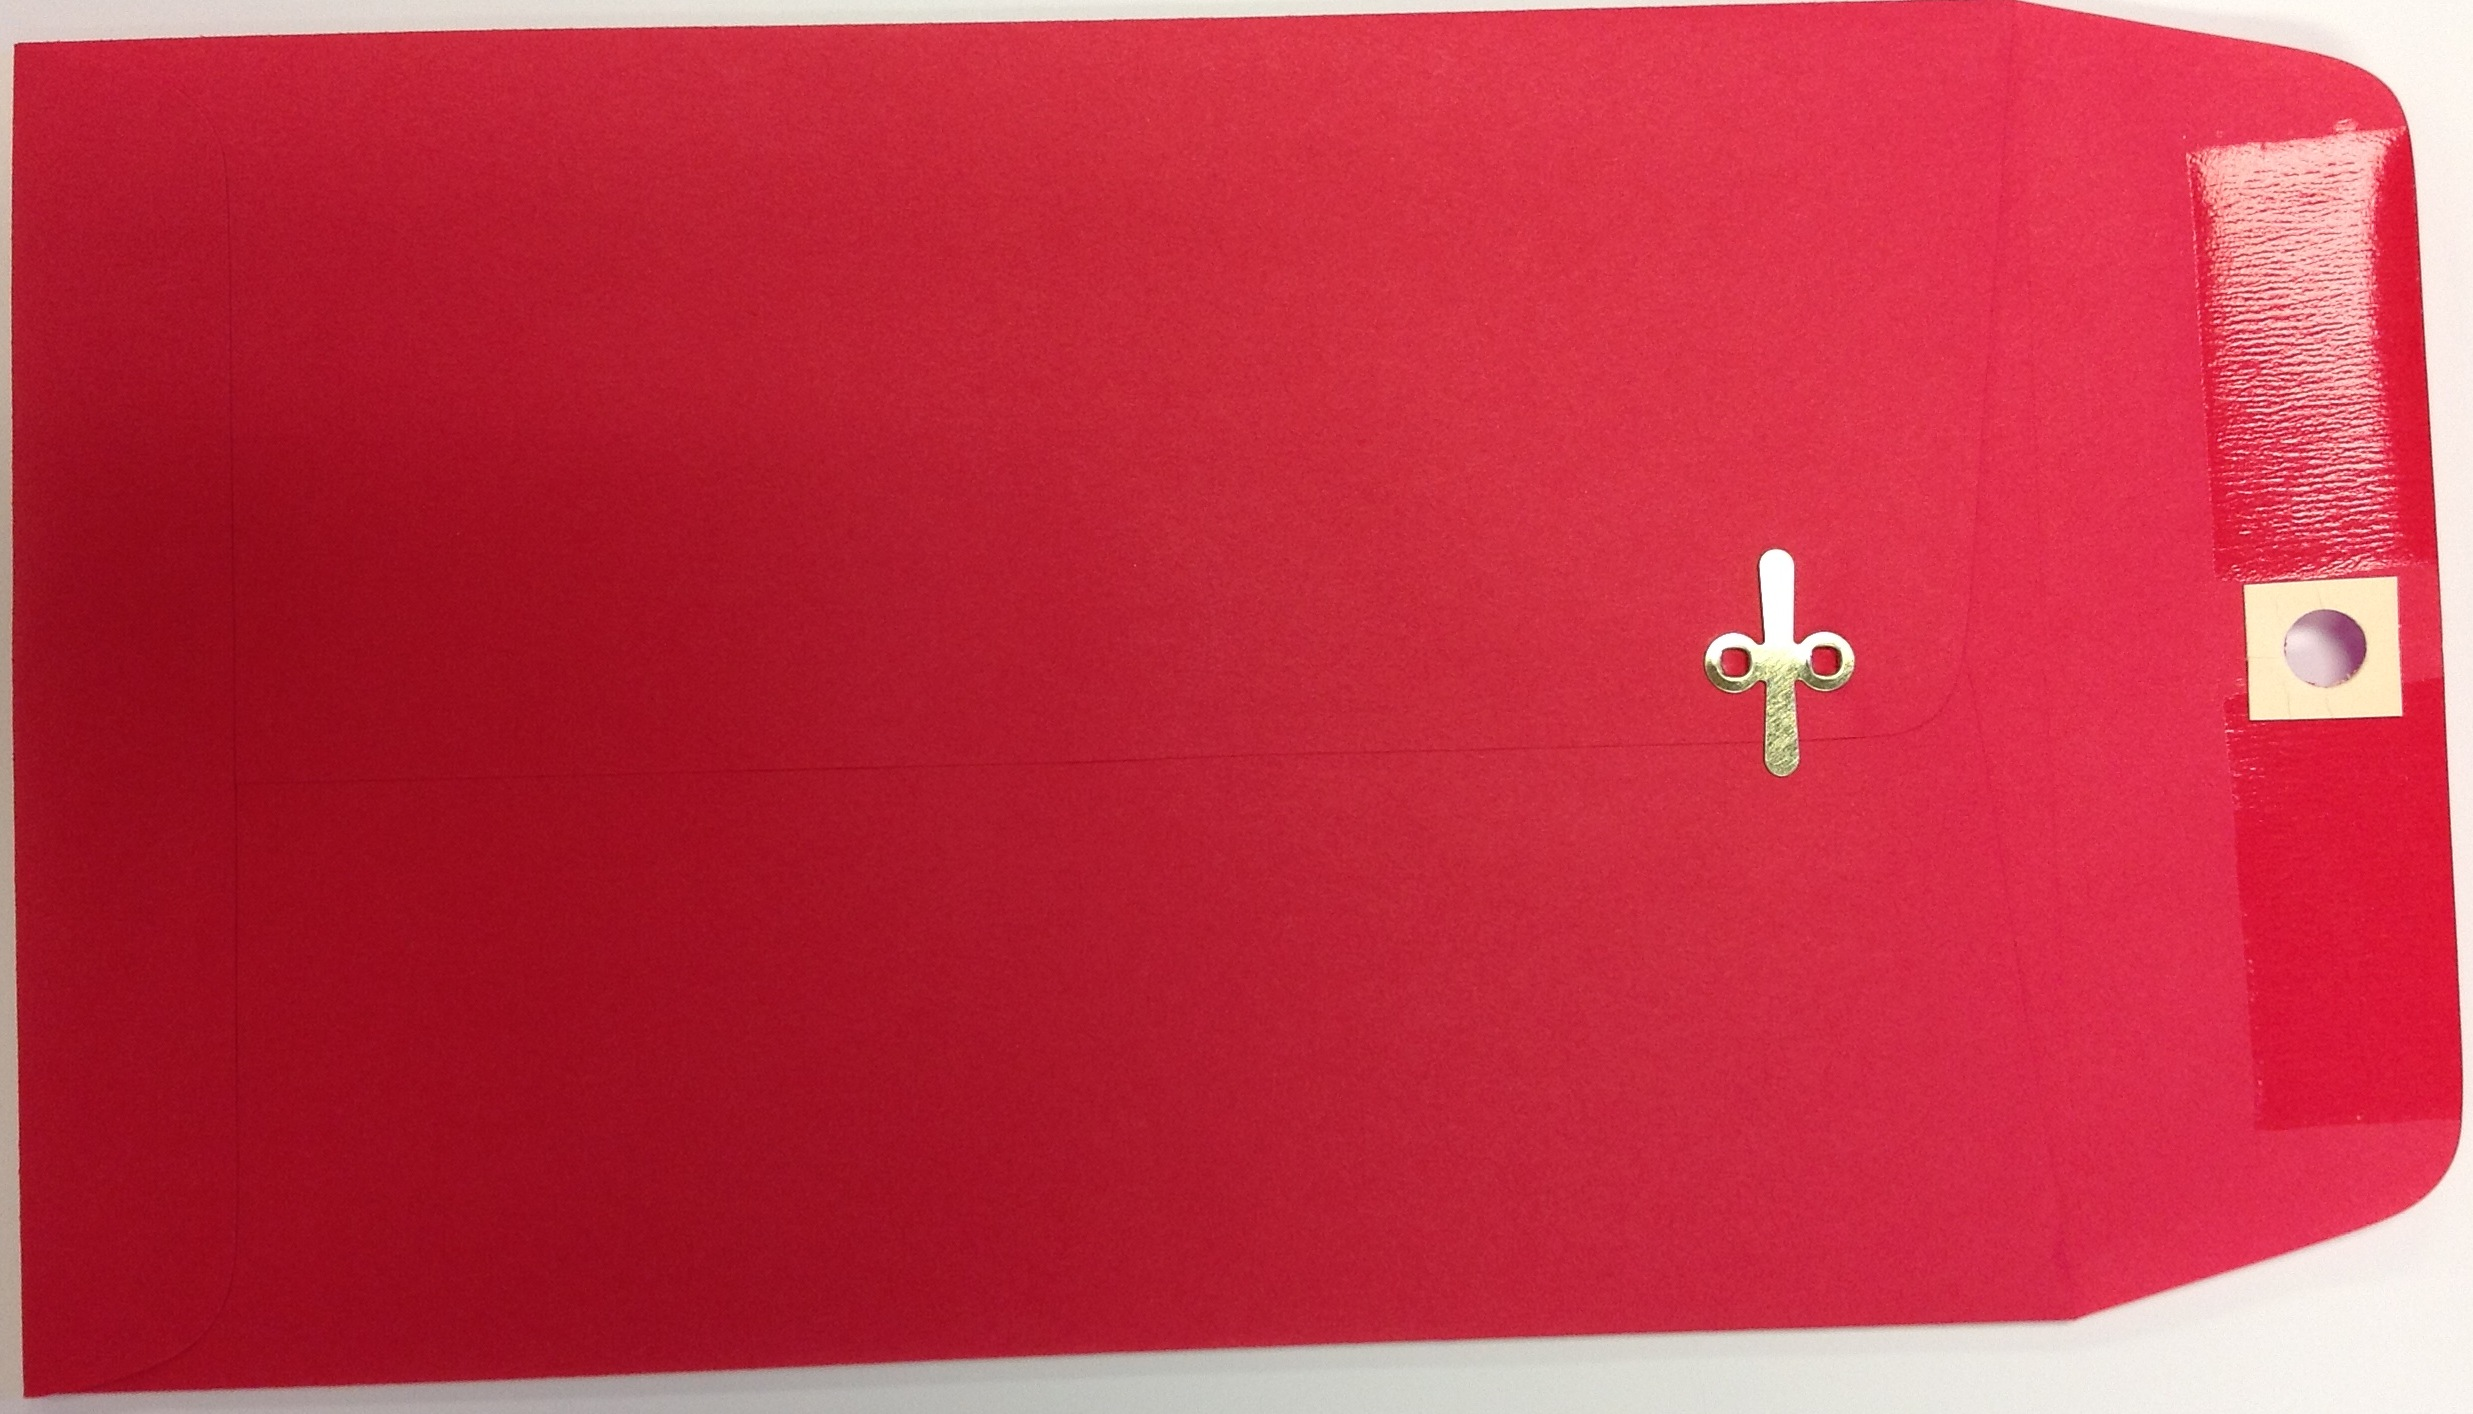 9X12 CLASP ENVELOPES RED 25s